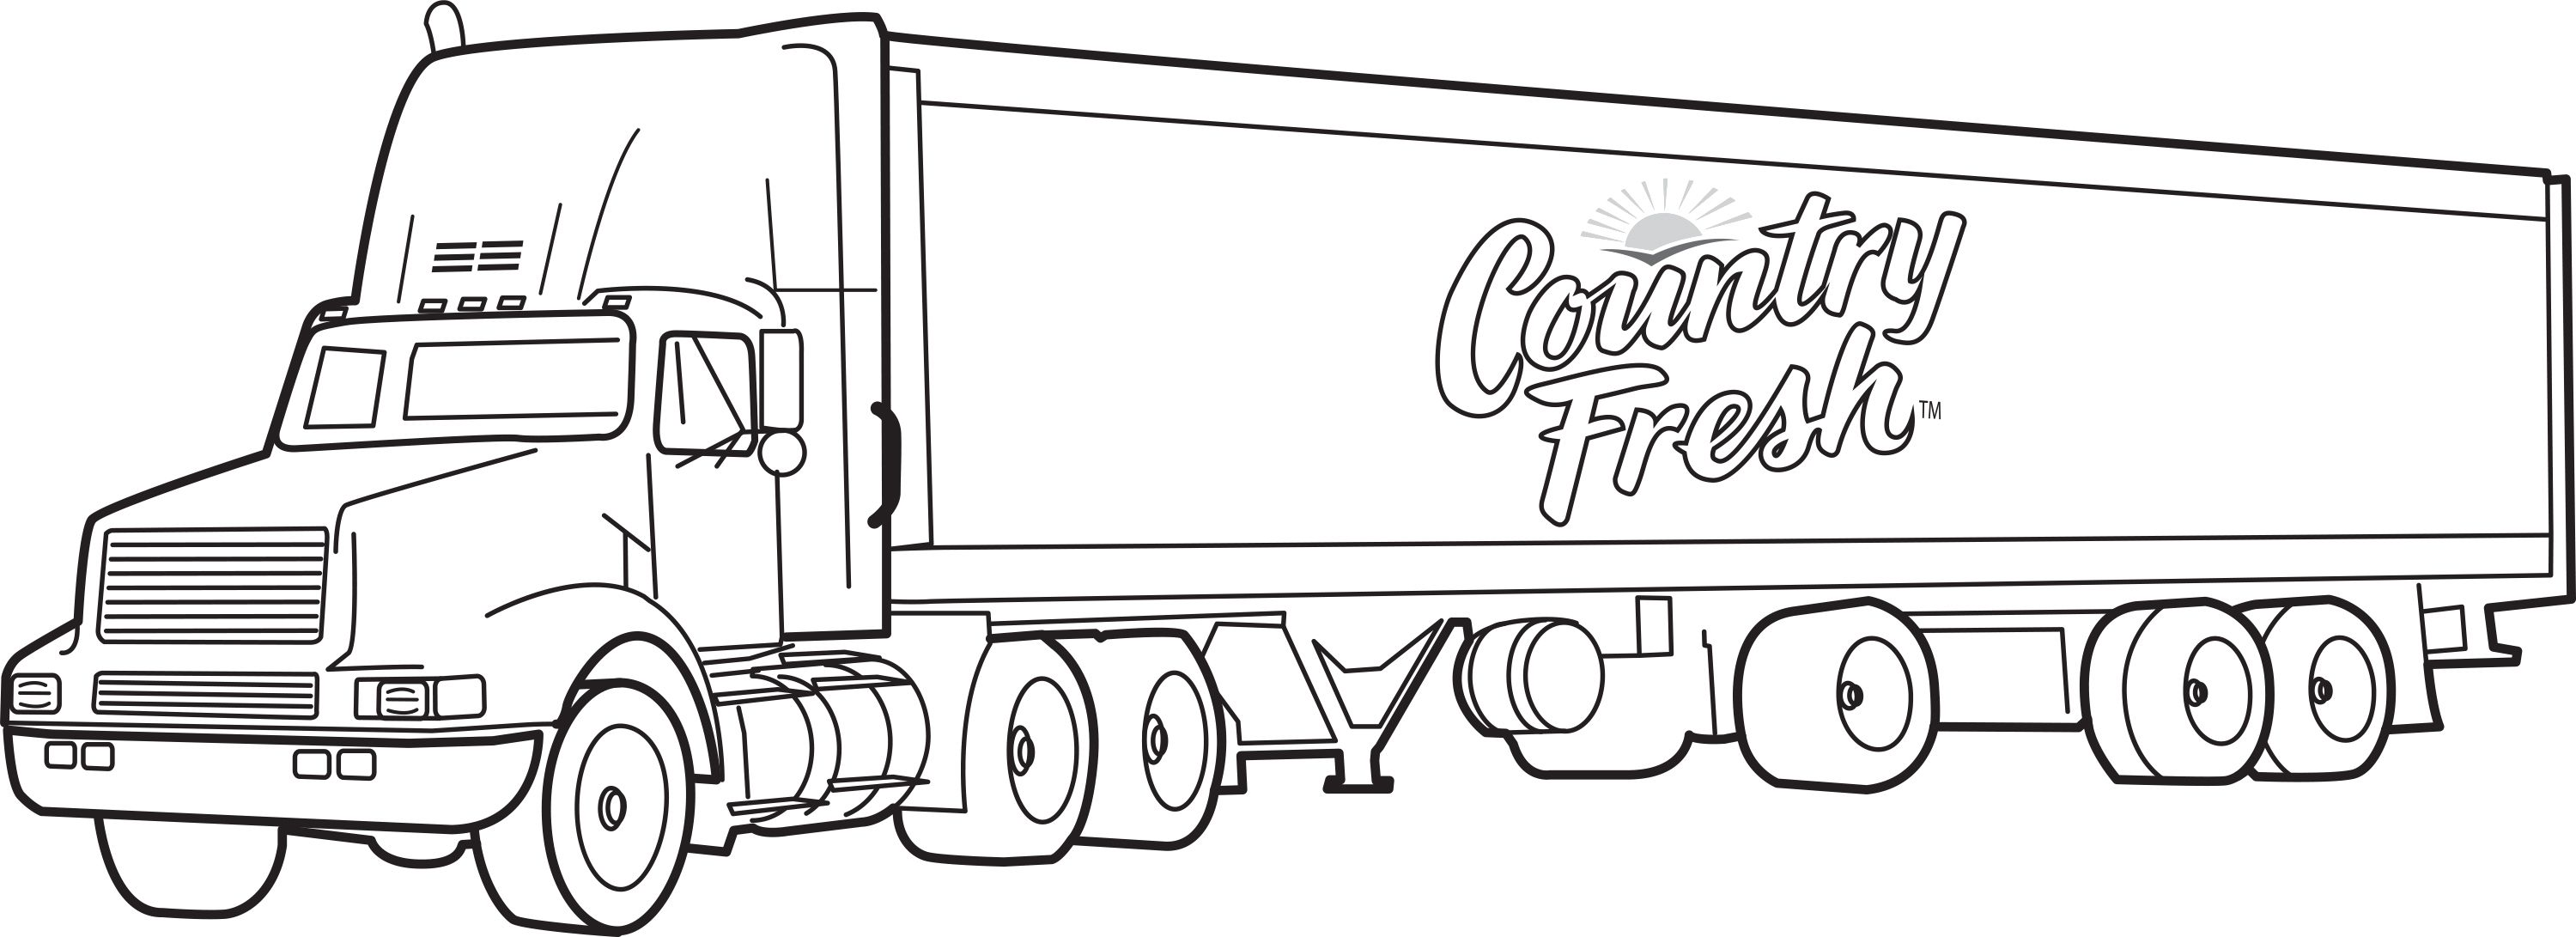 Coloring Pages Tonka Truck Coloring Pages 1000 images about trucks coloring pages on pinterest sheds and for kids